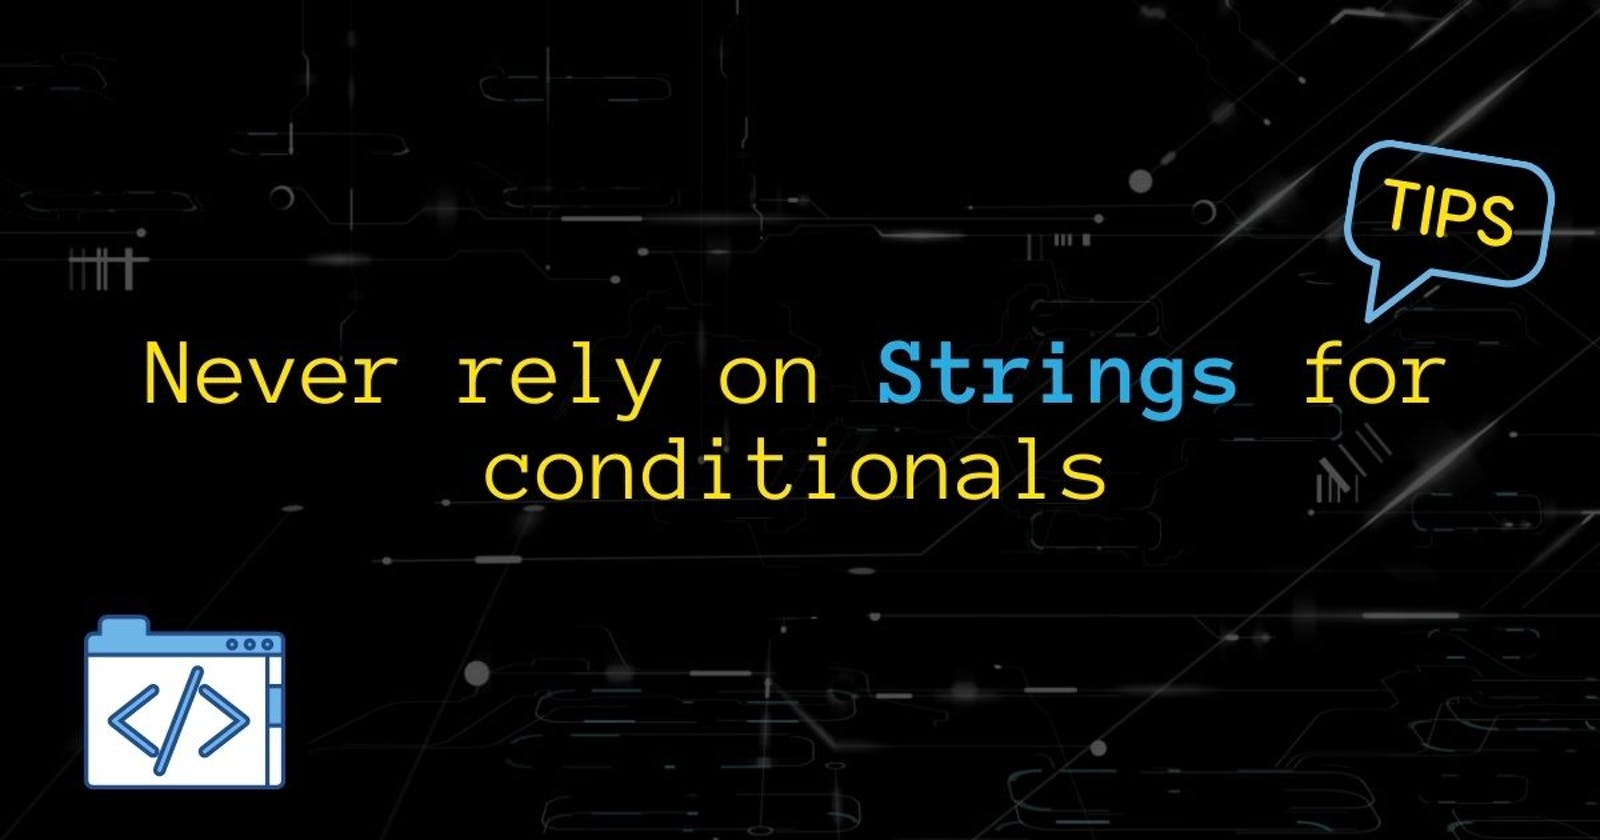 Never rely on Strings for conditionals